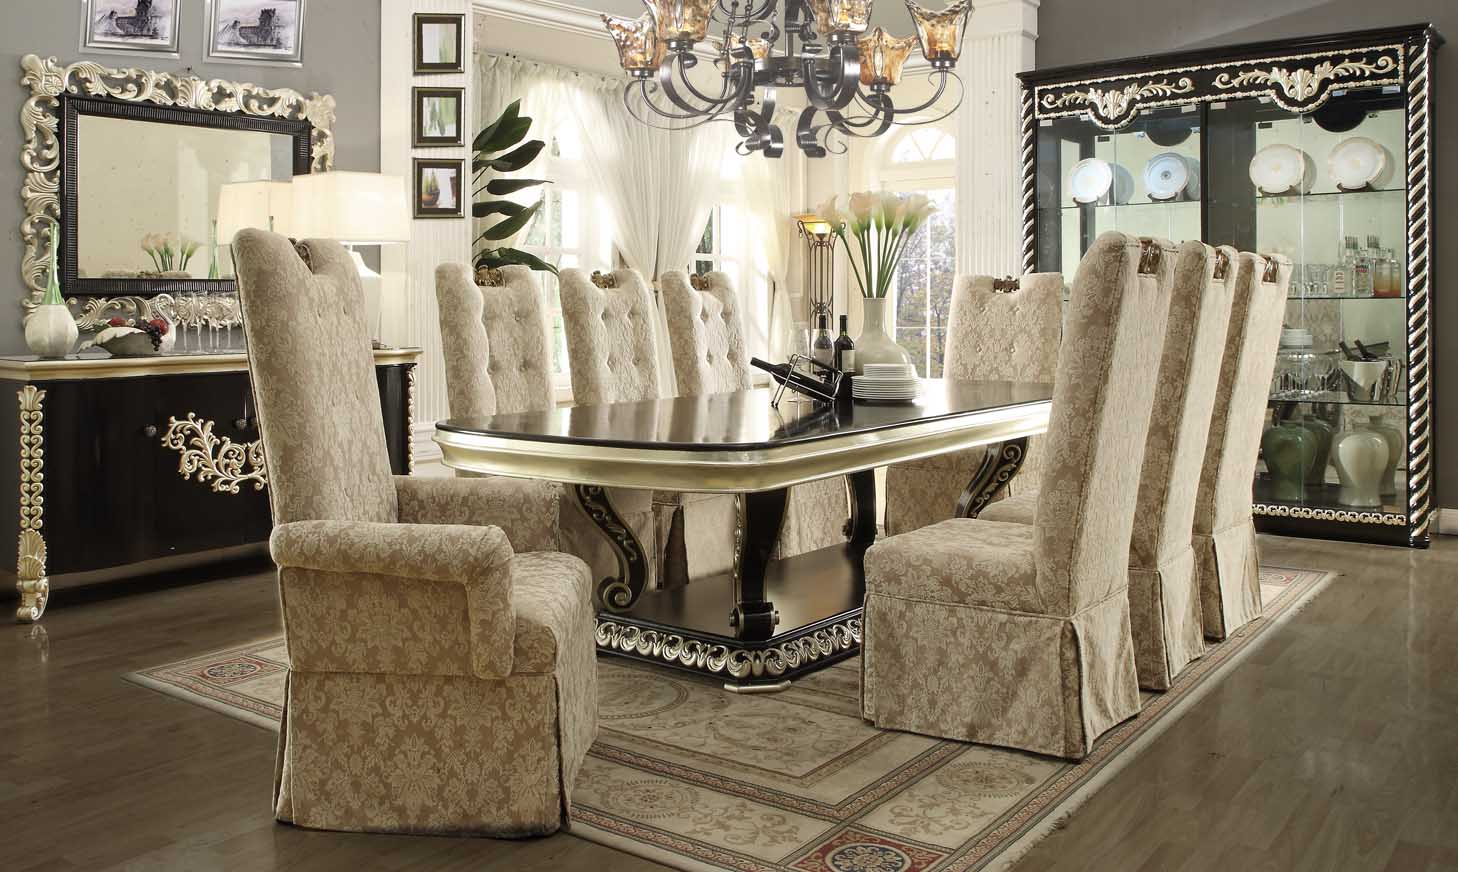 Marble Table Marble Top Custom Made 12 Seater Dining Table - Buy 12 ...